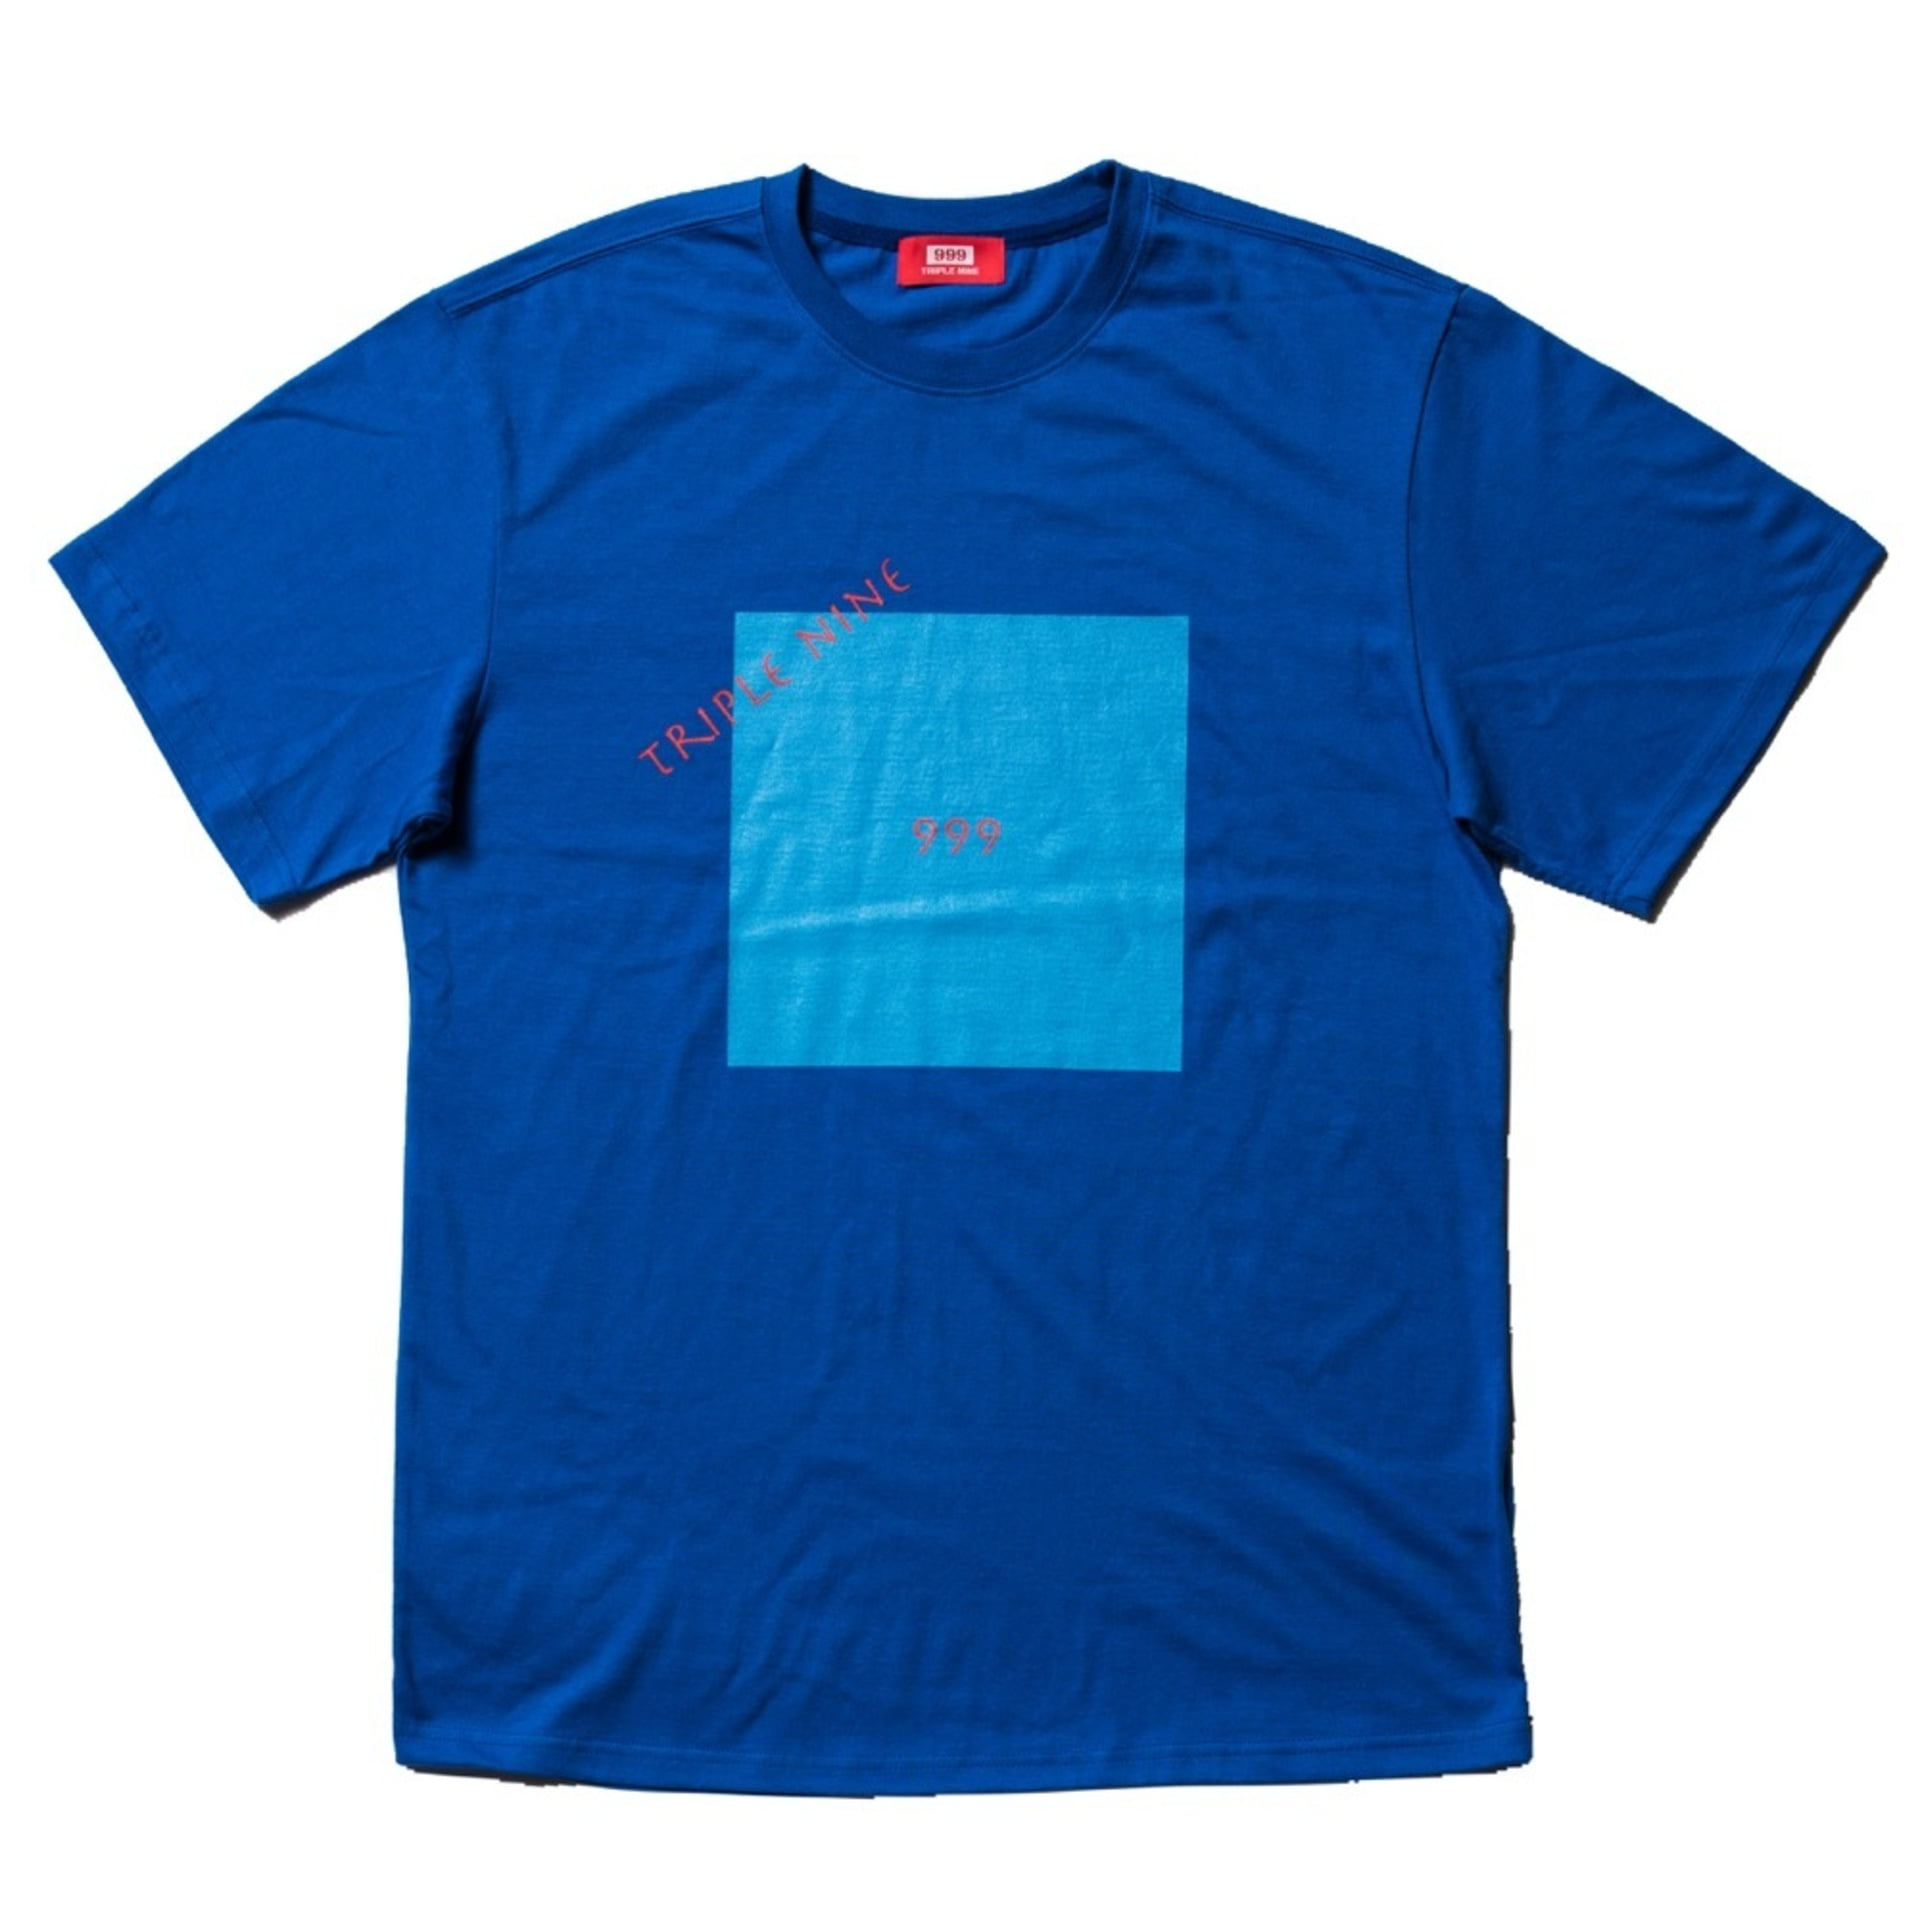 BLUE LOGO T-SHIRT #1